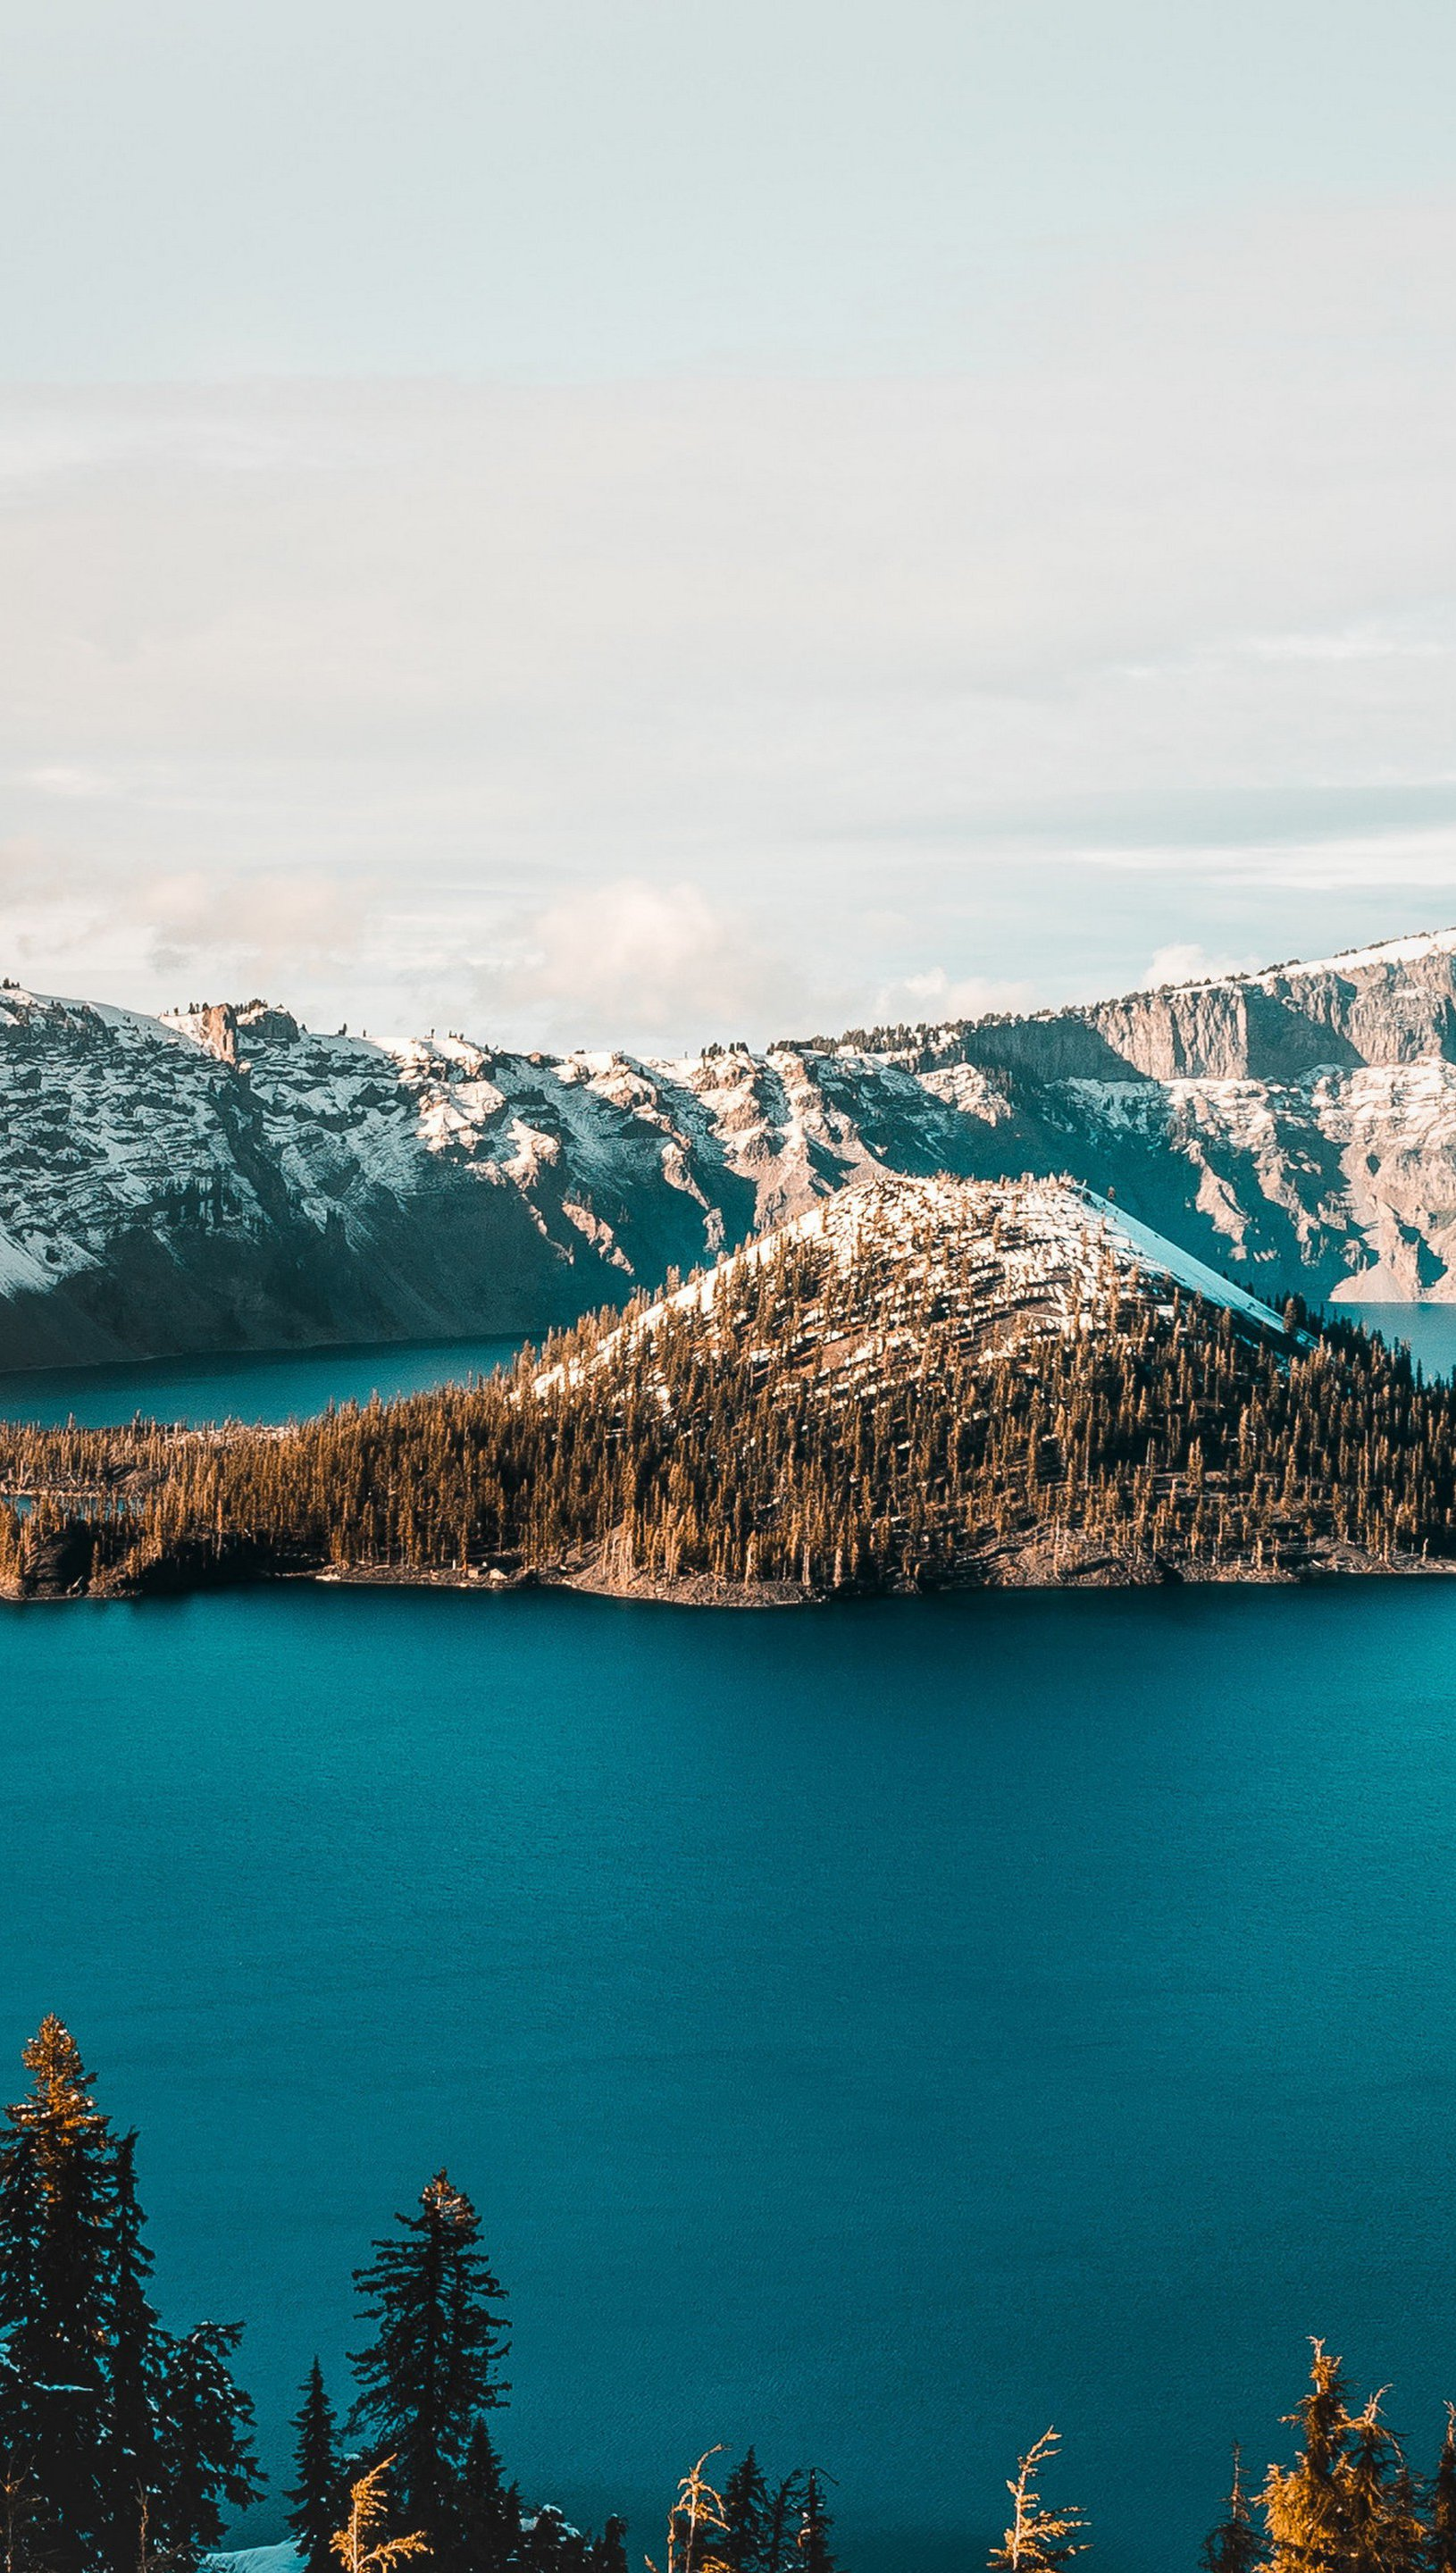 Wallpaper Lake in snowy mountains Vertical